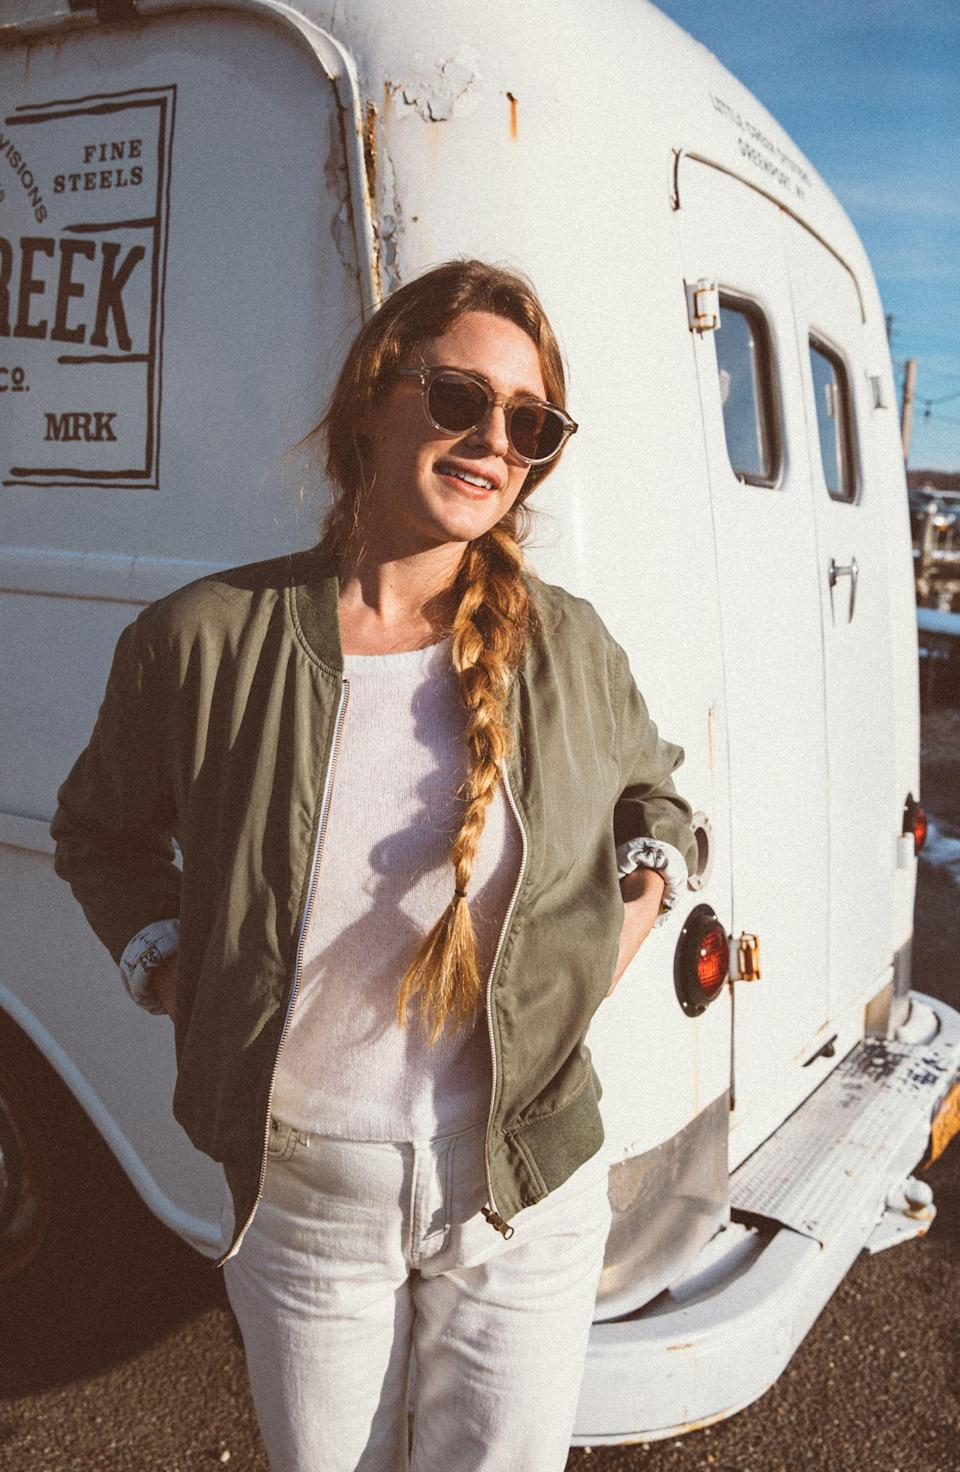 """<p><strong>FAHERTY</strong></p><p>nordstrom.com</p><p><strong>$186.00</strong></p><p><a href=""""https://go.redirectingat.com?id=74968X1596630&url=https%3A%2F%2Fshop.nordstrom.com%2Fs%2Ffaherty-aloha-reversible-bomber-jacket%2F5564281&sref=https%3A%2F%2Fwww.goodhousekeeping.com%2Fbeauty%2Ffashion%2Fg32585880%2Frainy-day-outfits%2F"""" rel=""""nofollow noopener"""" target=""""_blank"""" data-ylk=""""slk:Shop Now"""" class=""""link rapid-noclick-resp"""">Shop Now</a></p><p>This reversible bomber jacket is classic army green on one side and a fun tropical print on the other. Great for the transitional time of year when you need something light. Pair this bomber on a drizzly day with a white sweatshirt and jeans for a little extra edge.</p>"""